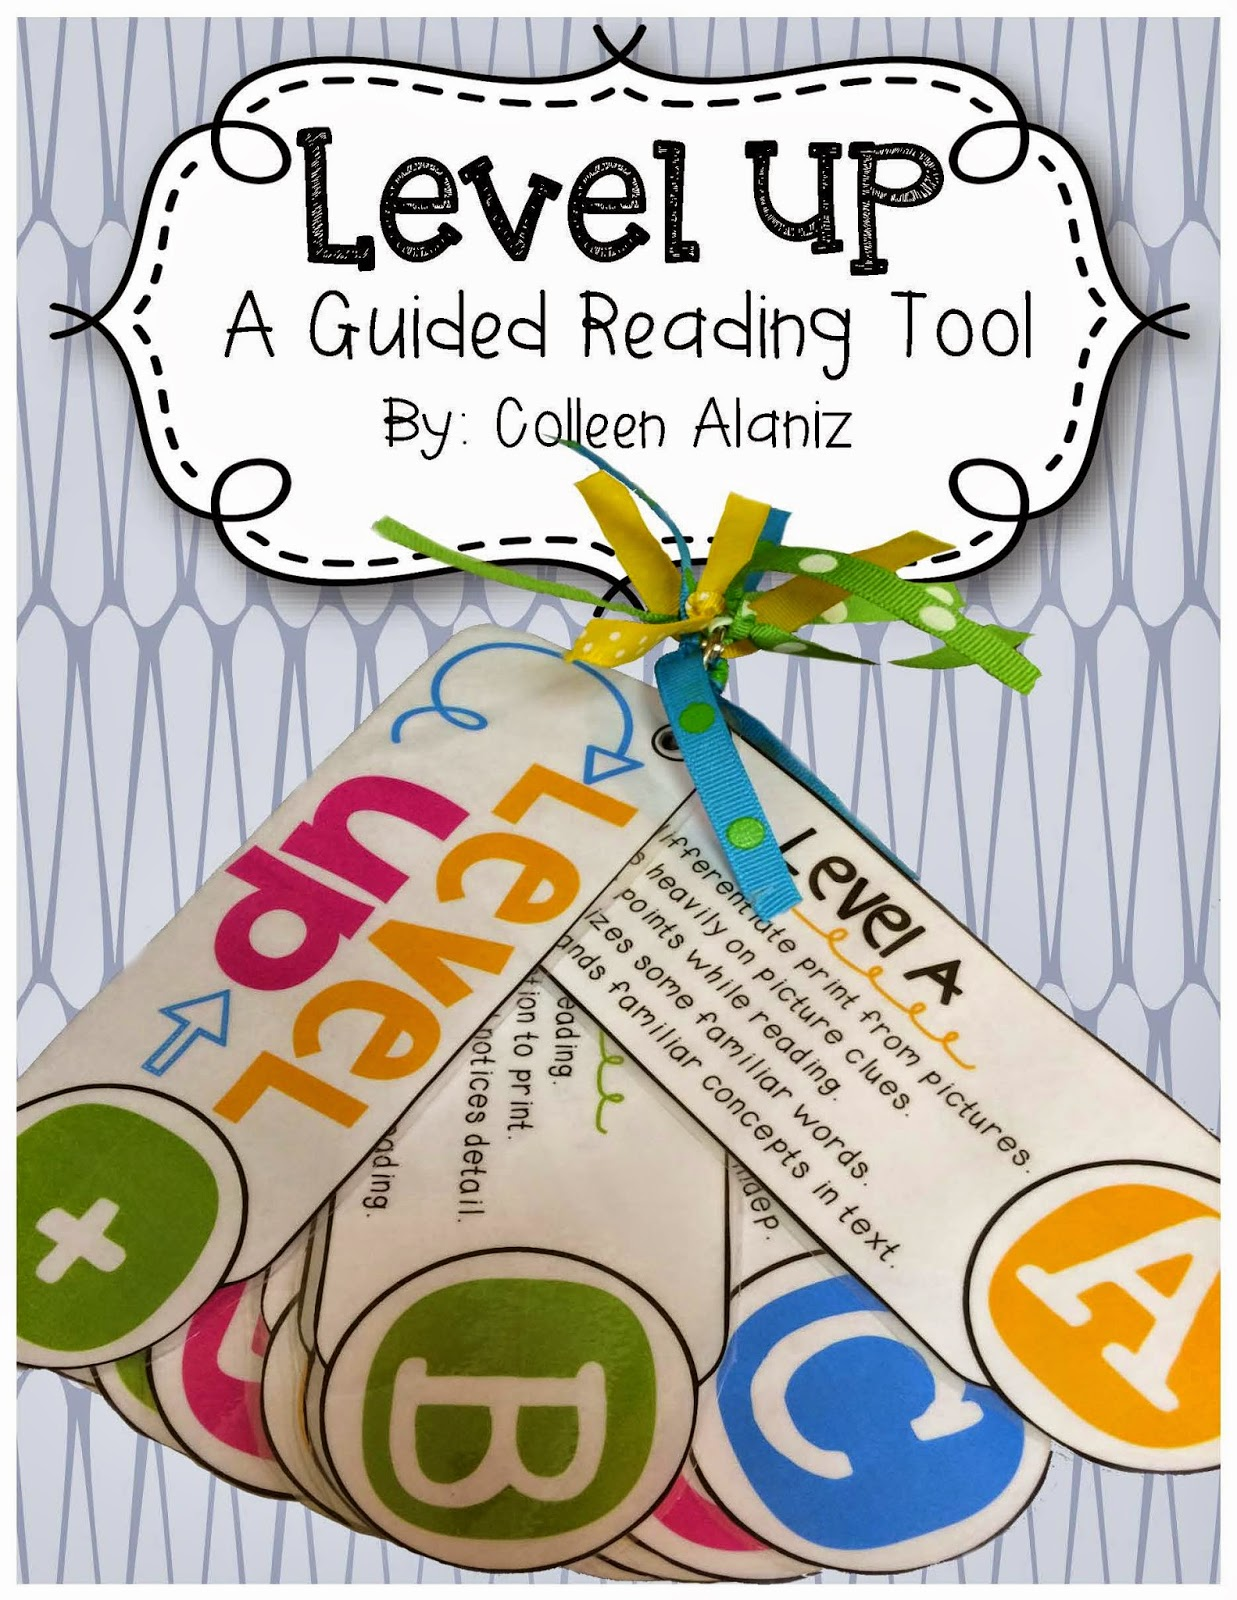 http://www.teacherspayteachers.com/Product/Level-UP-A-Guided-Reading-Tool-1423884